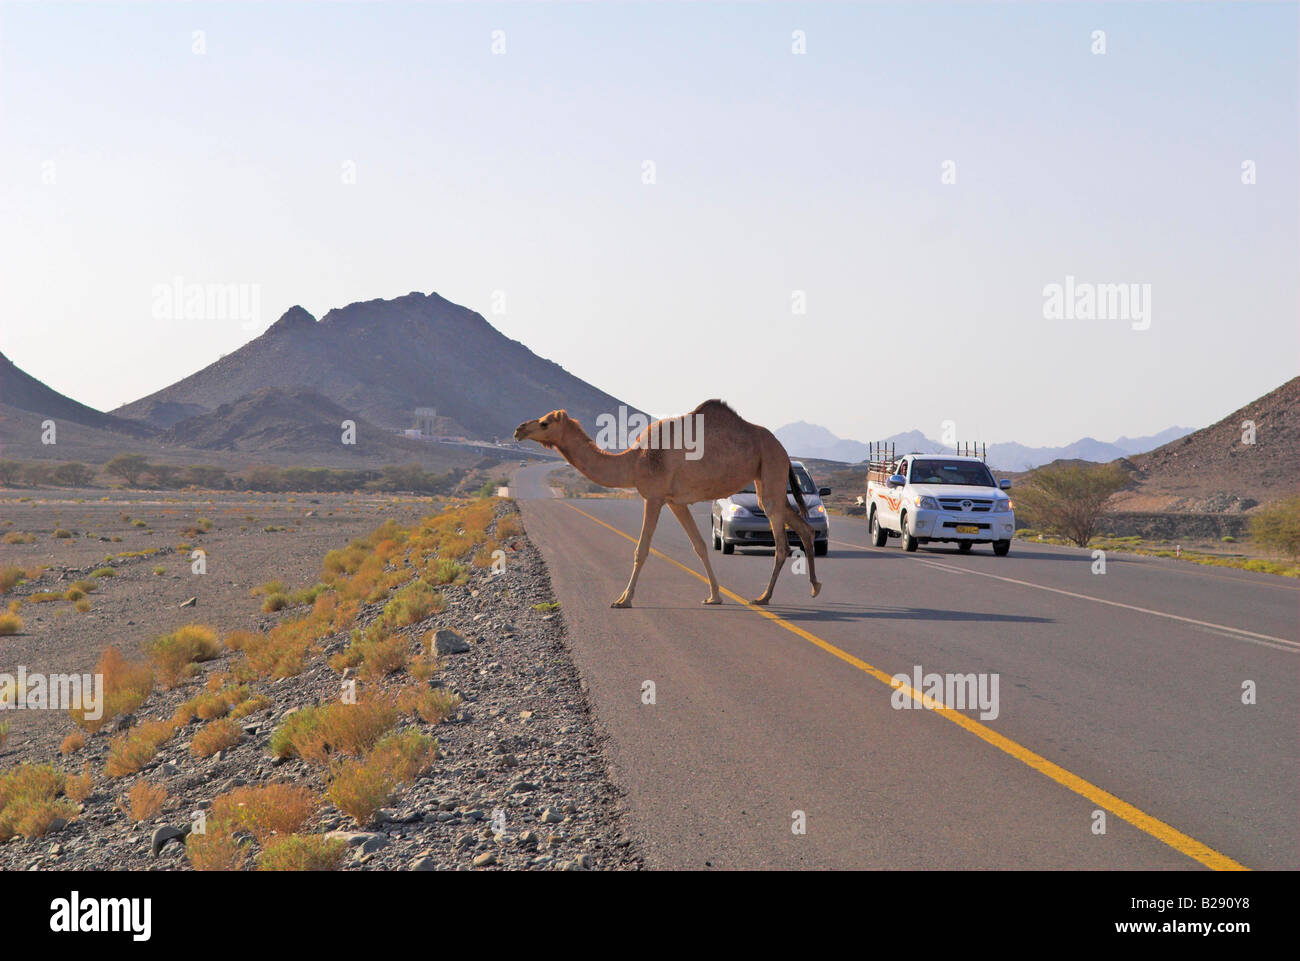 Camel crosses the road Wahiba Sands Date 12 03 2008 Ref ZB917 111153 0033 COMPULSORY CREDIT World Pictures Photoshot - Stock Image